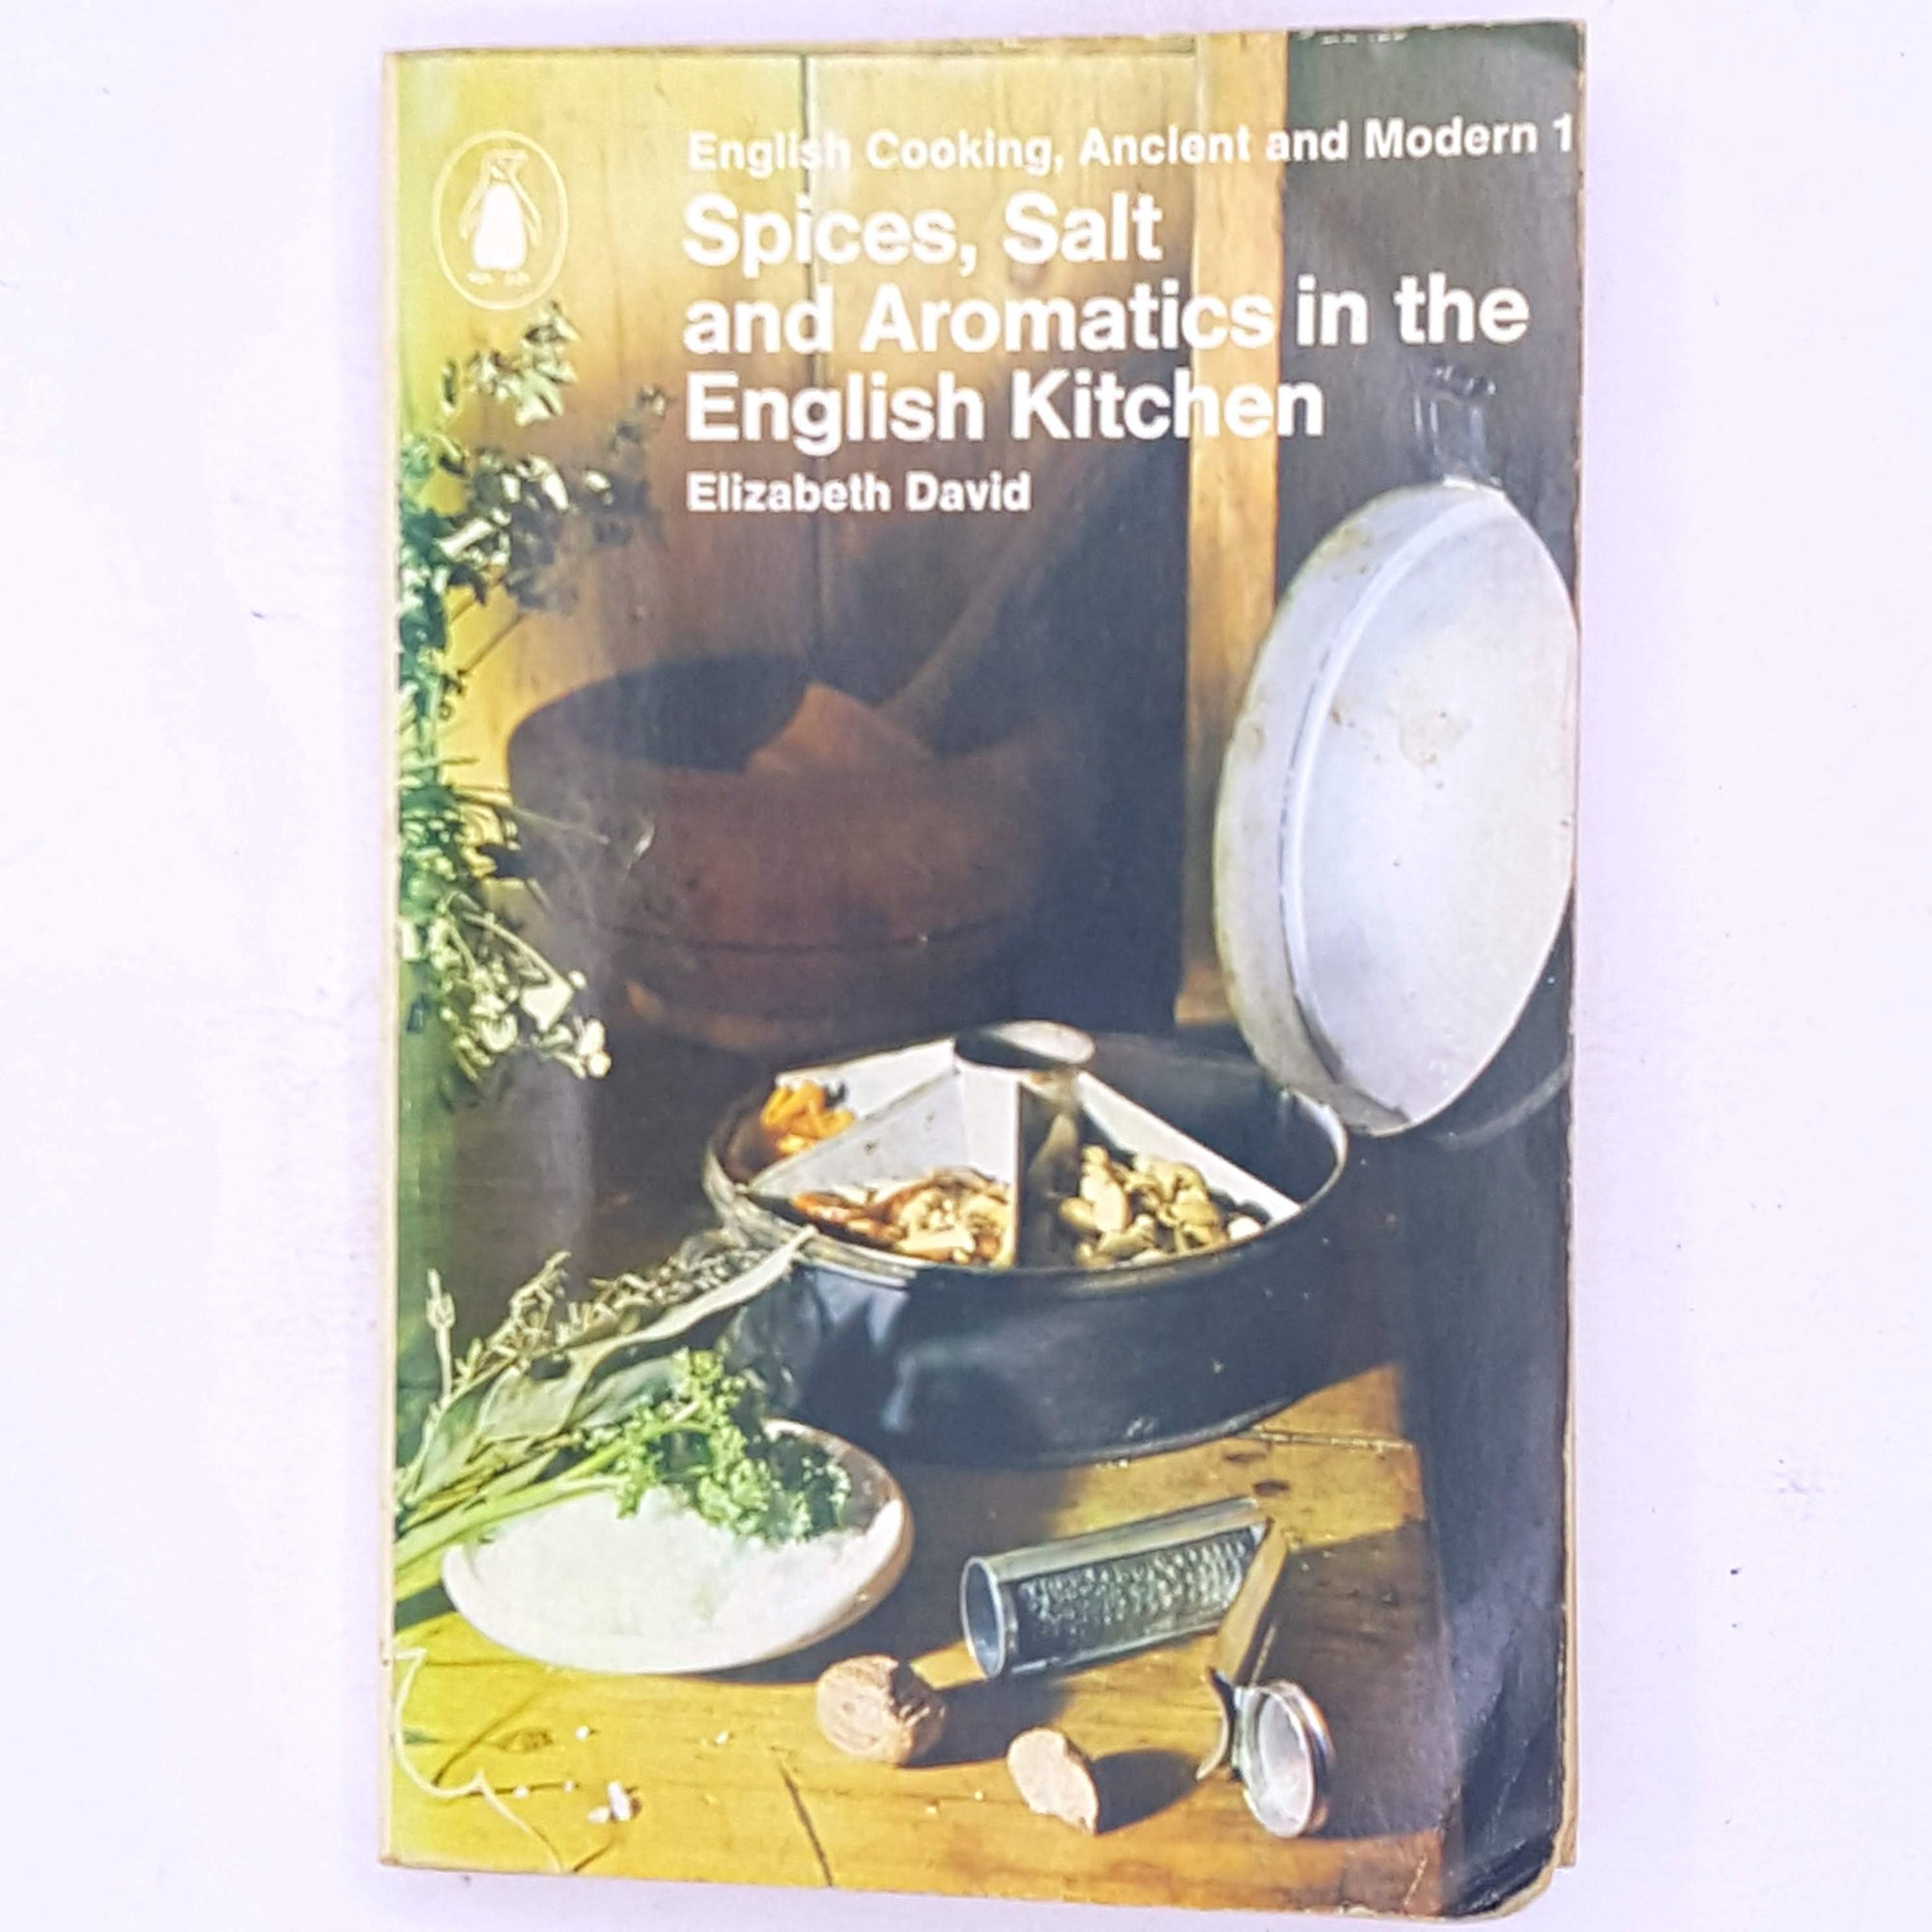 A Penguin Handbook- English Cooking, Ancient & Modern 1 Spices, Salt and Aromatics in the English Kitchen by Elizabeth David